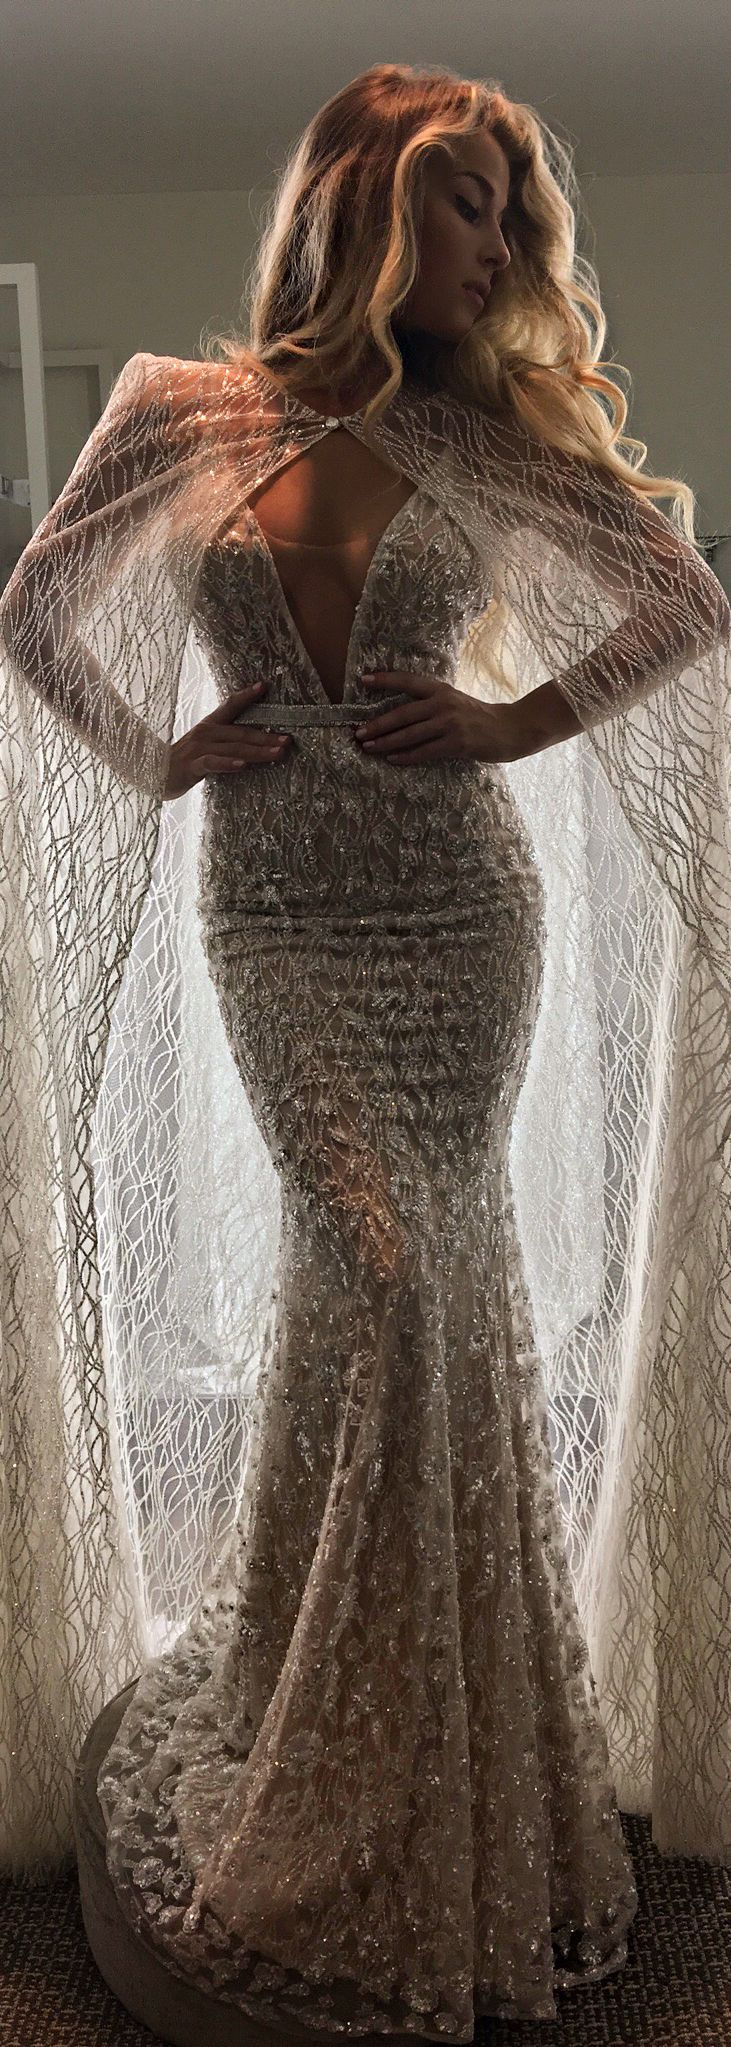 This @bertabridal wedding dress was already pretty special... but then you add a cape - wow!